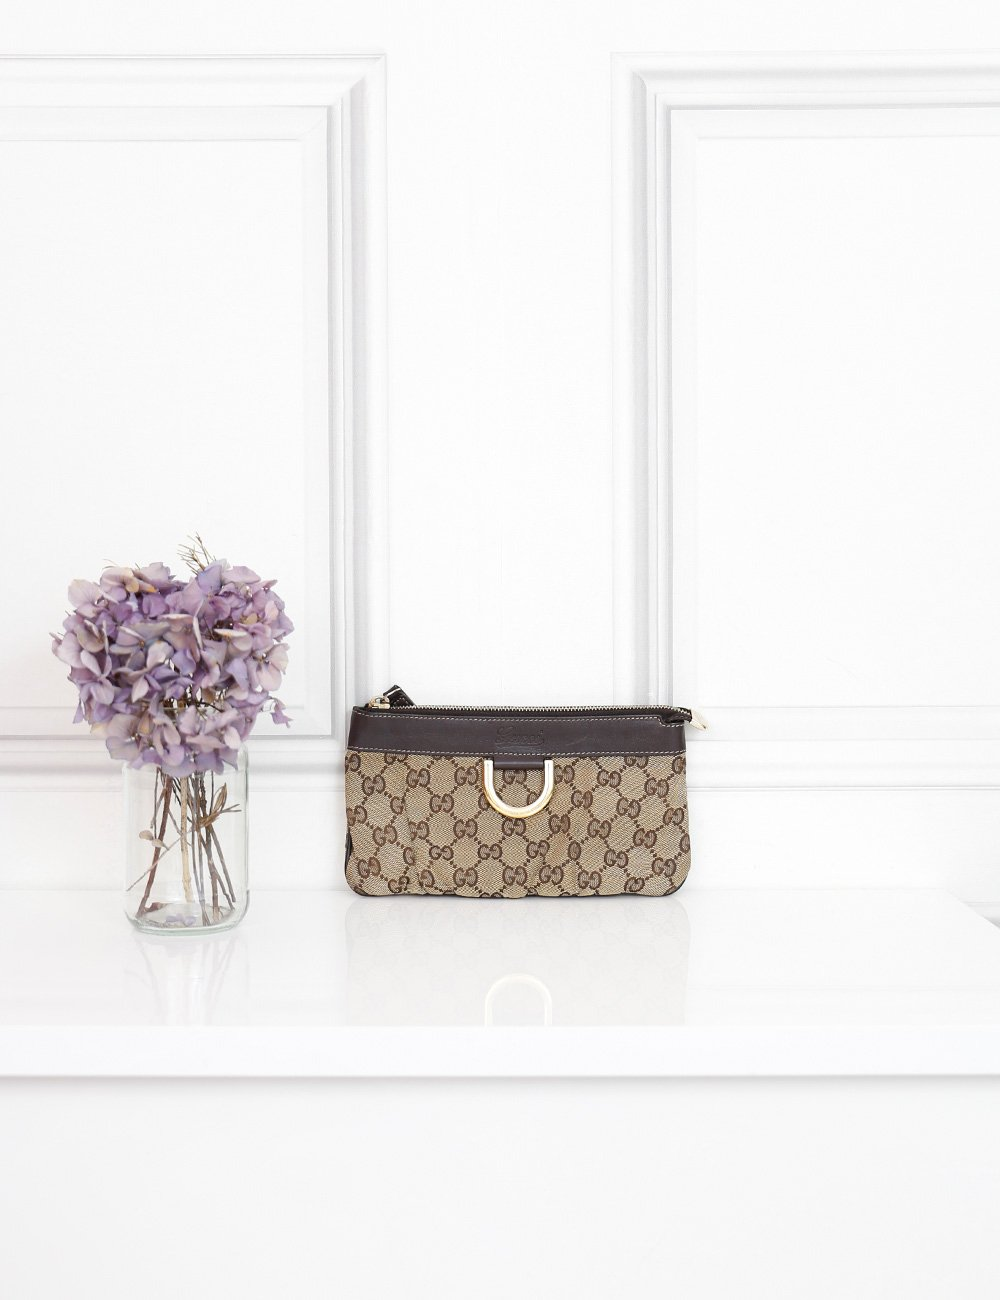 Gucci multicolour small GG monogram clutch